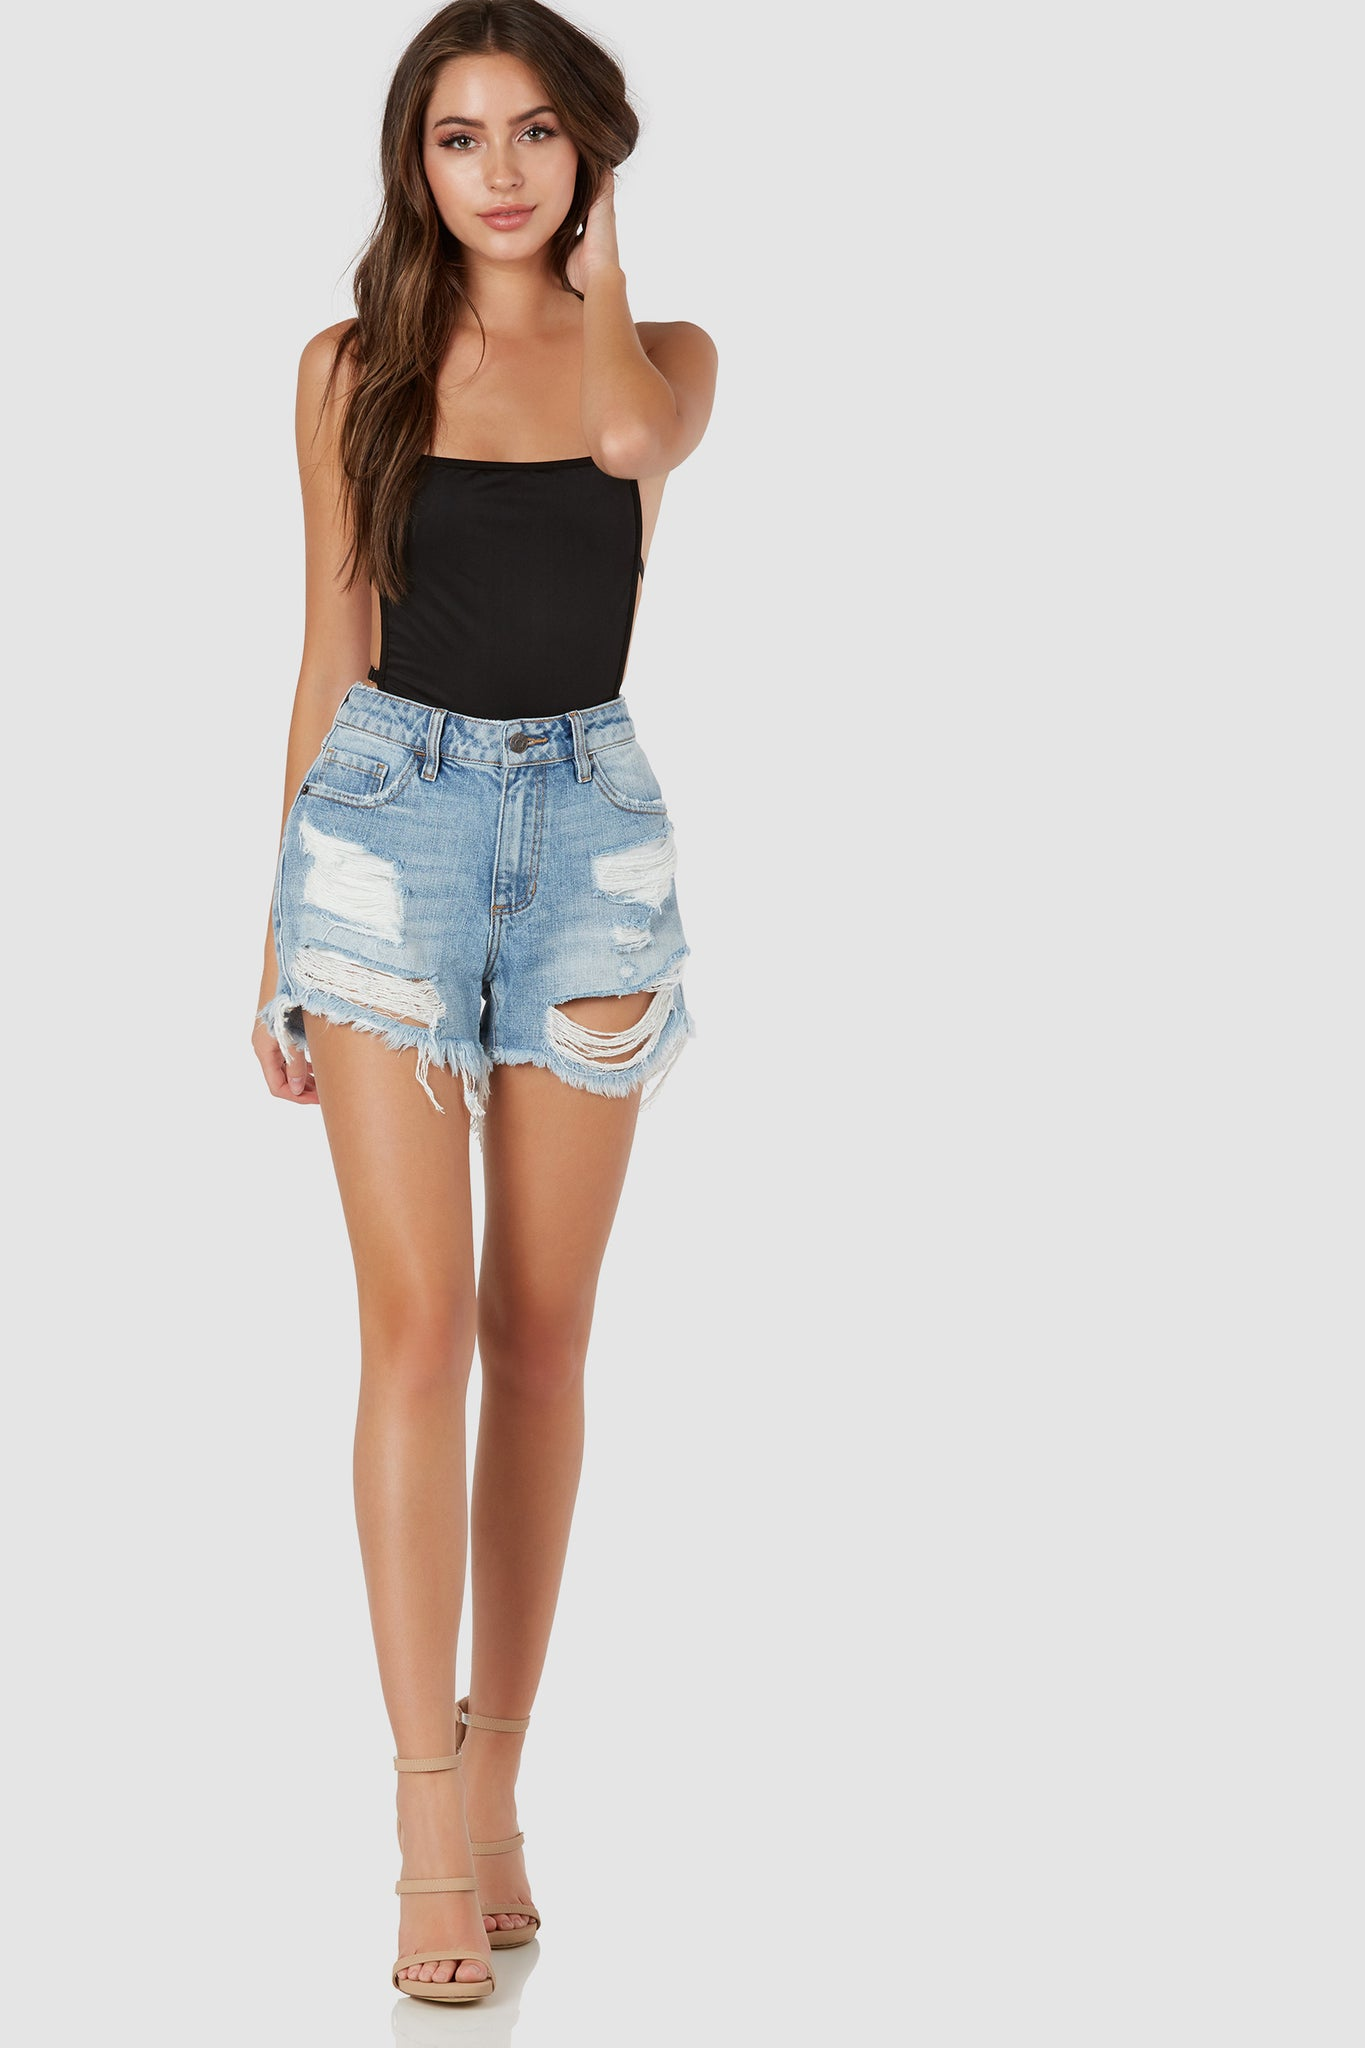 Casual mid rise denim cut-offs with trendy shredded detailing. Frayed raw hem finish with front zip closure.